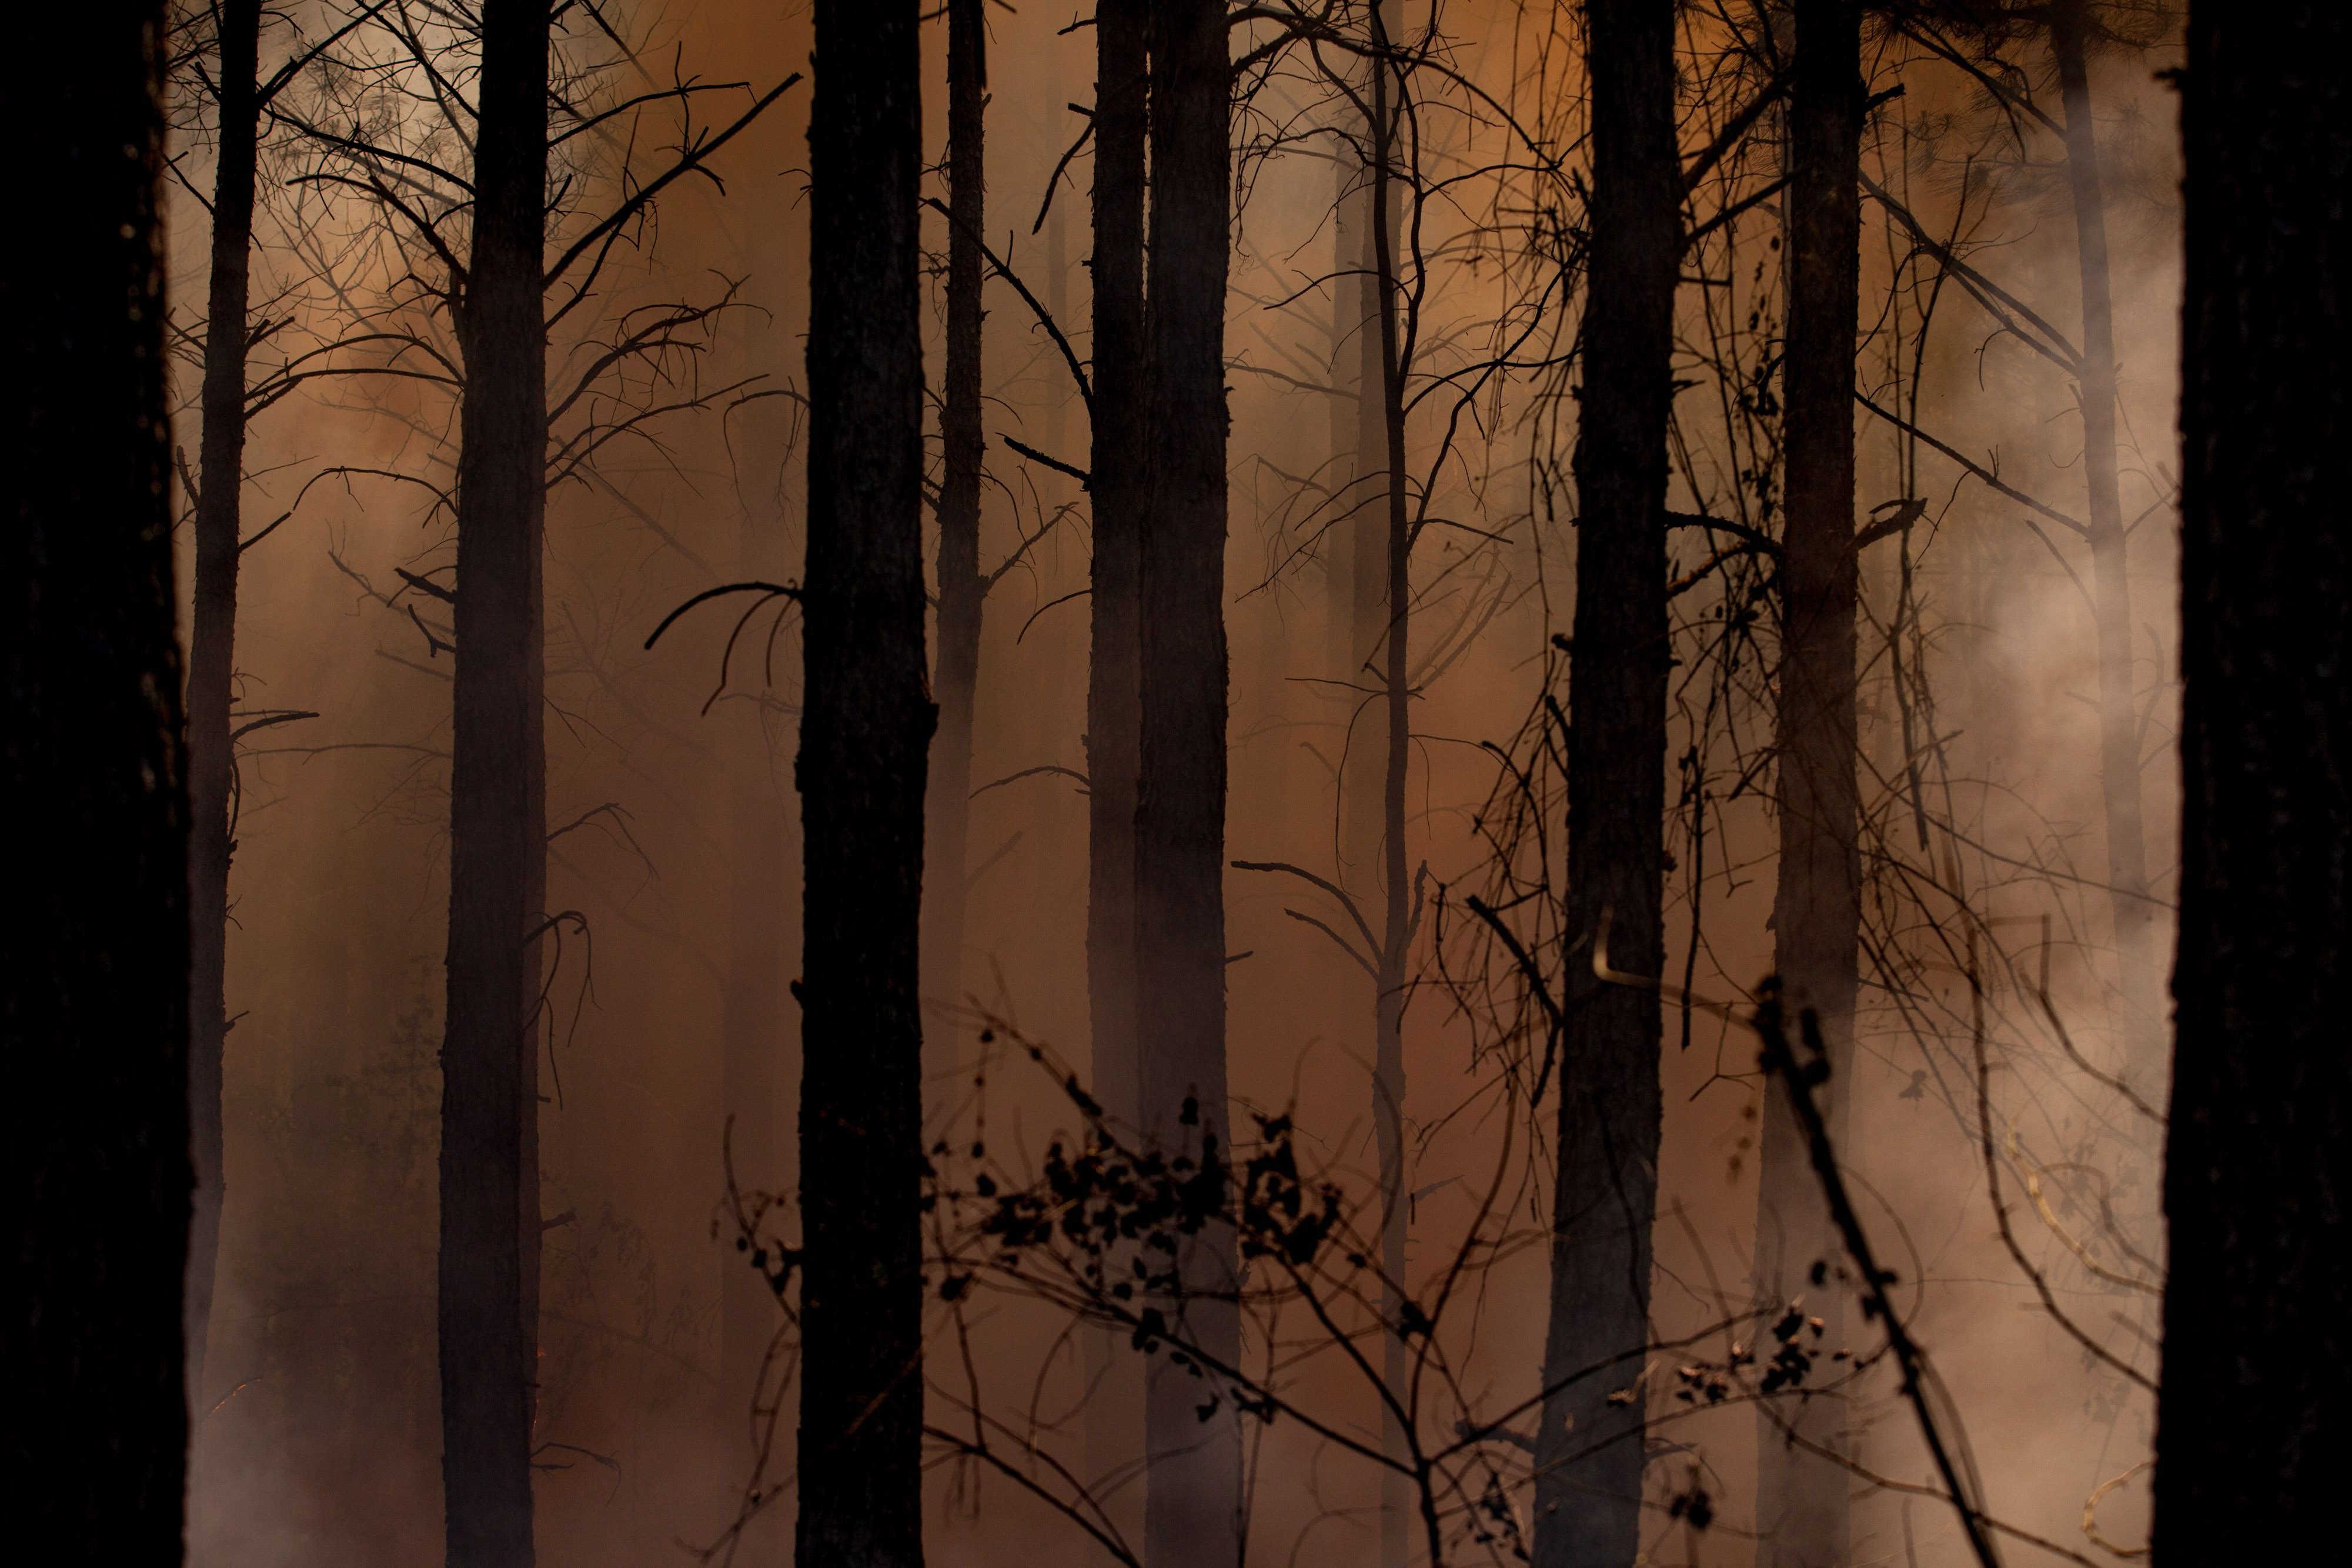 Thick smoke fills a forest, silhouetting tree trunks in black against brownish-gray light.